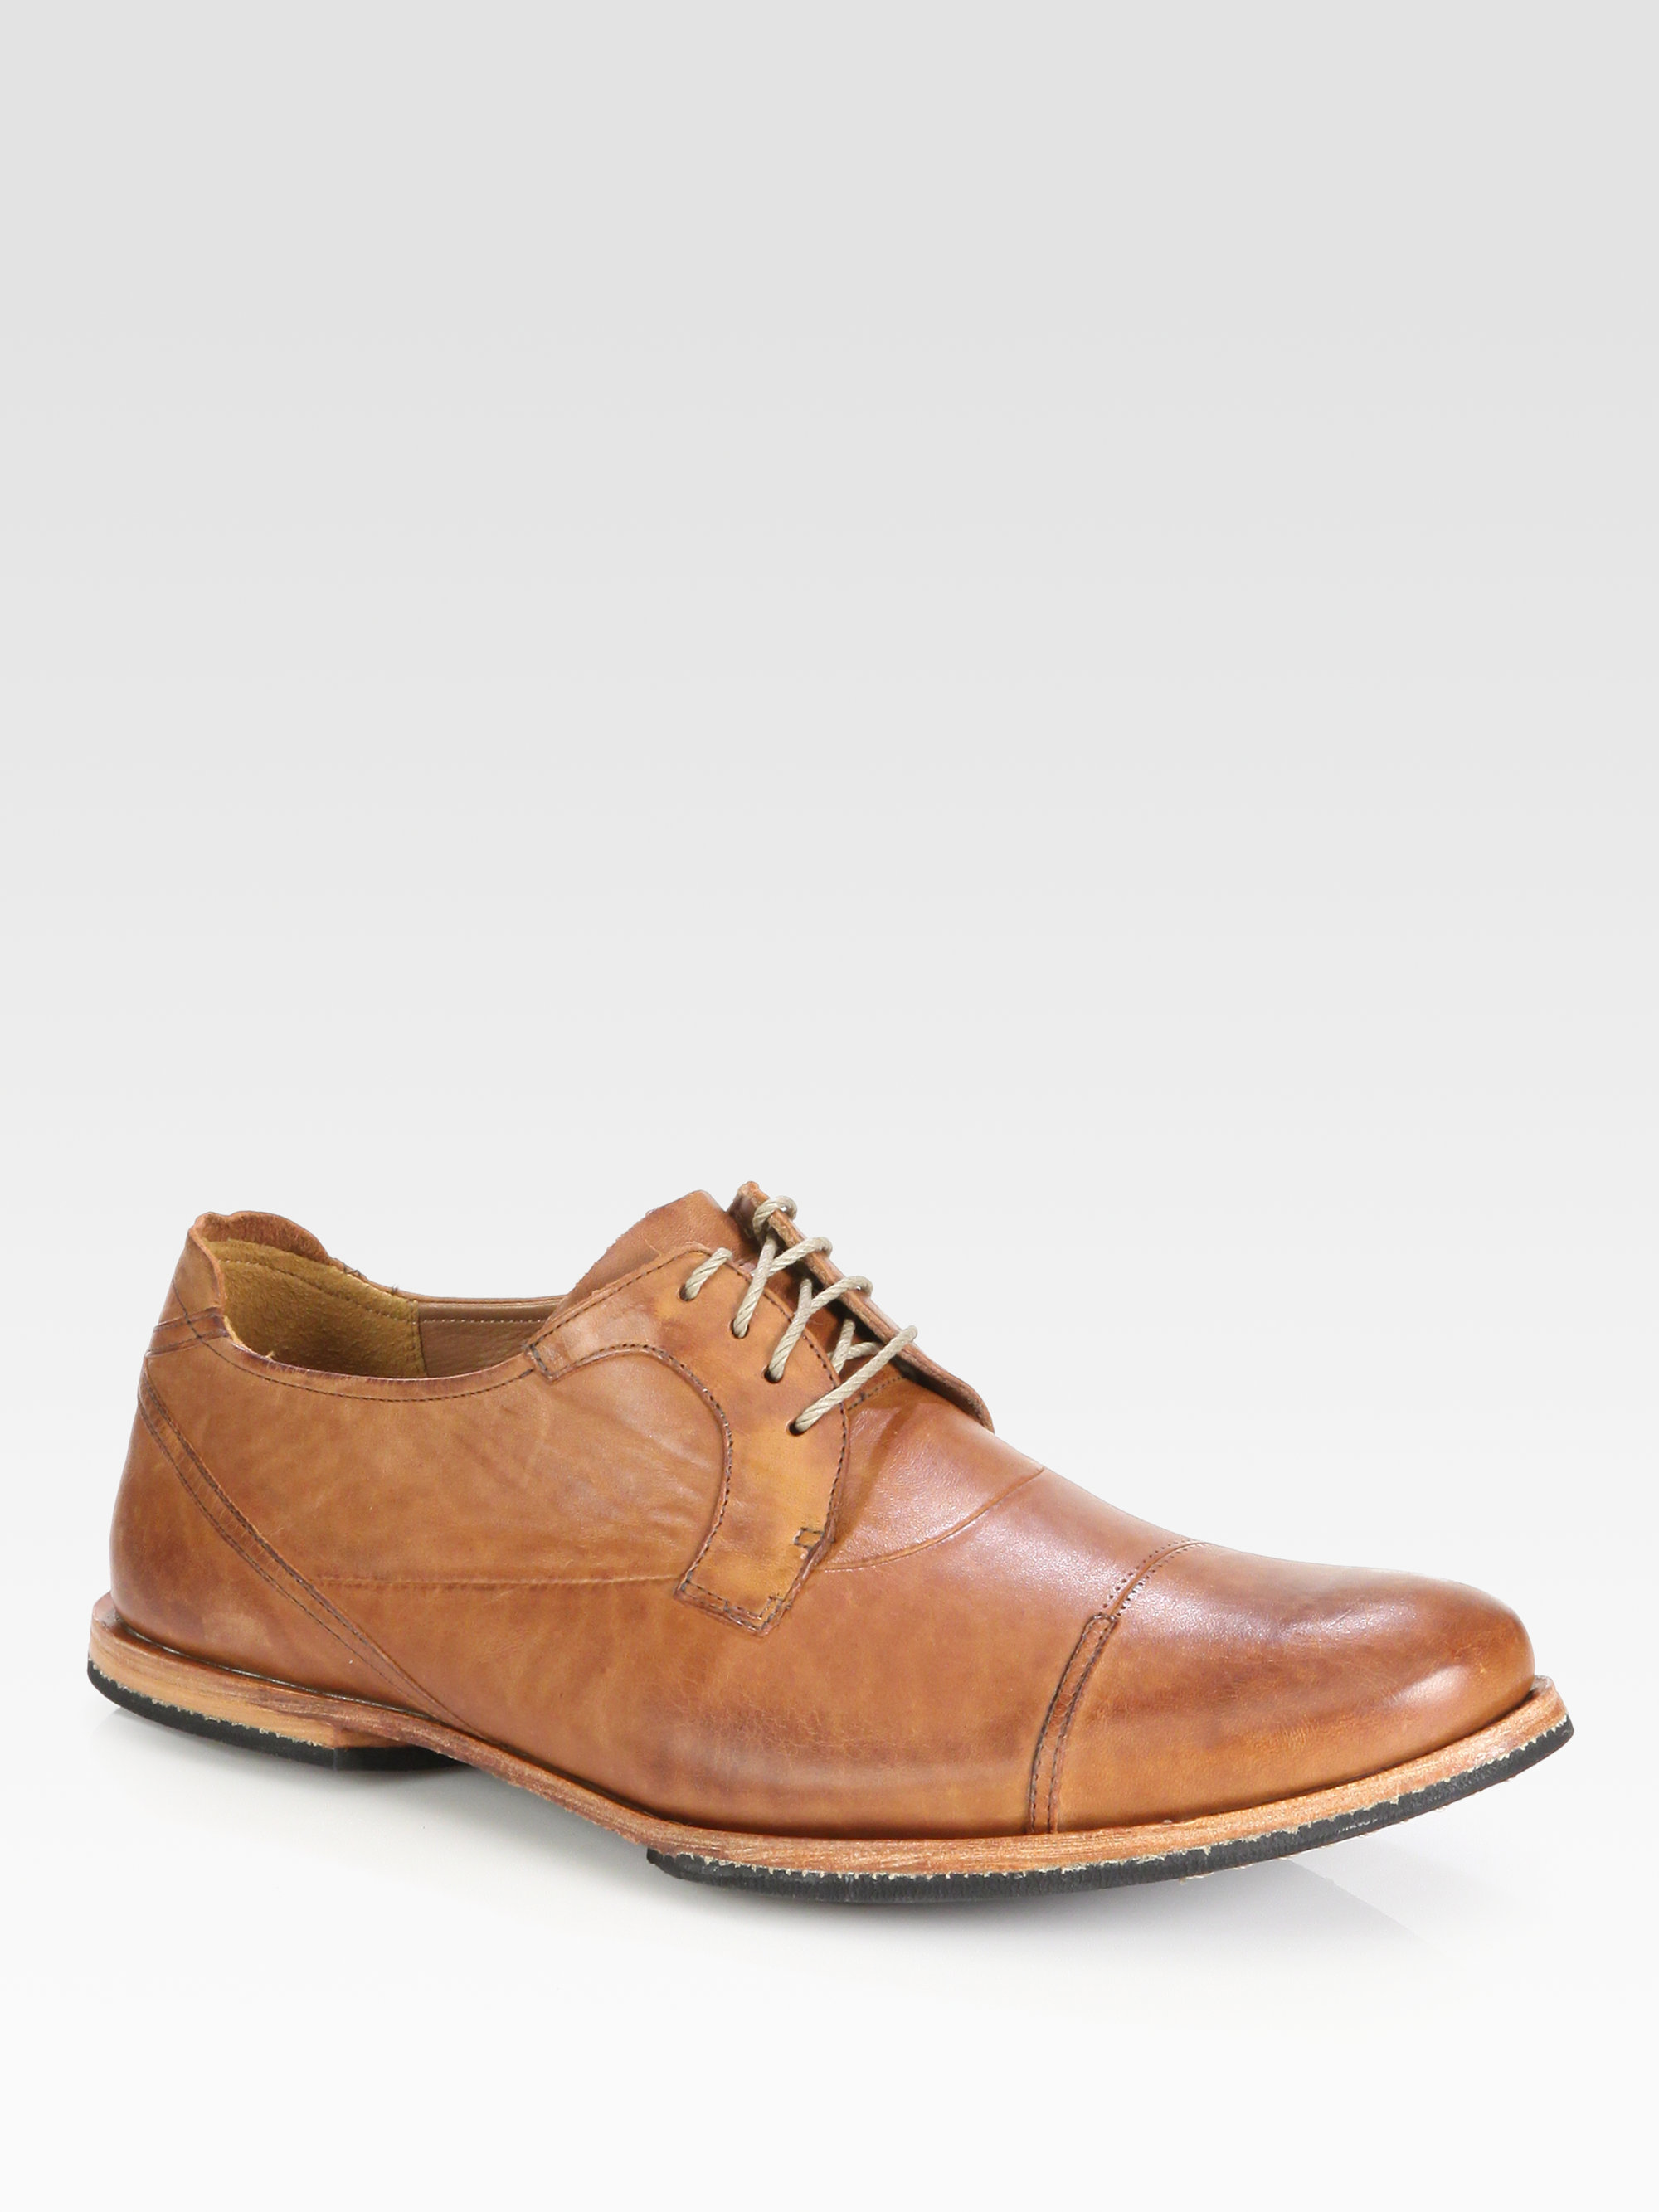 Lyst Timberland Wodehouse Captoe Oxfords In Brown For Men